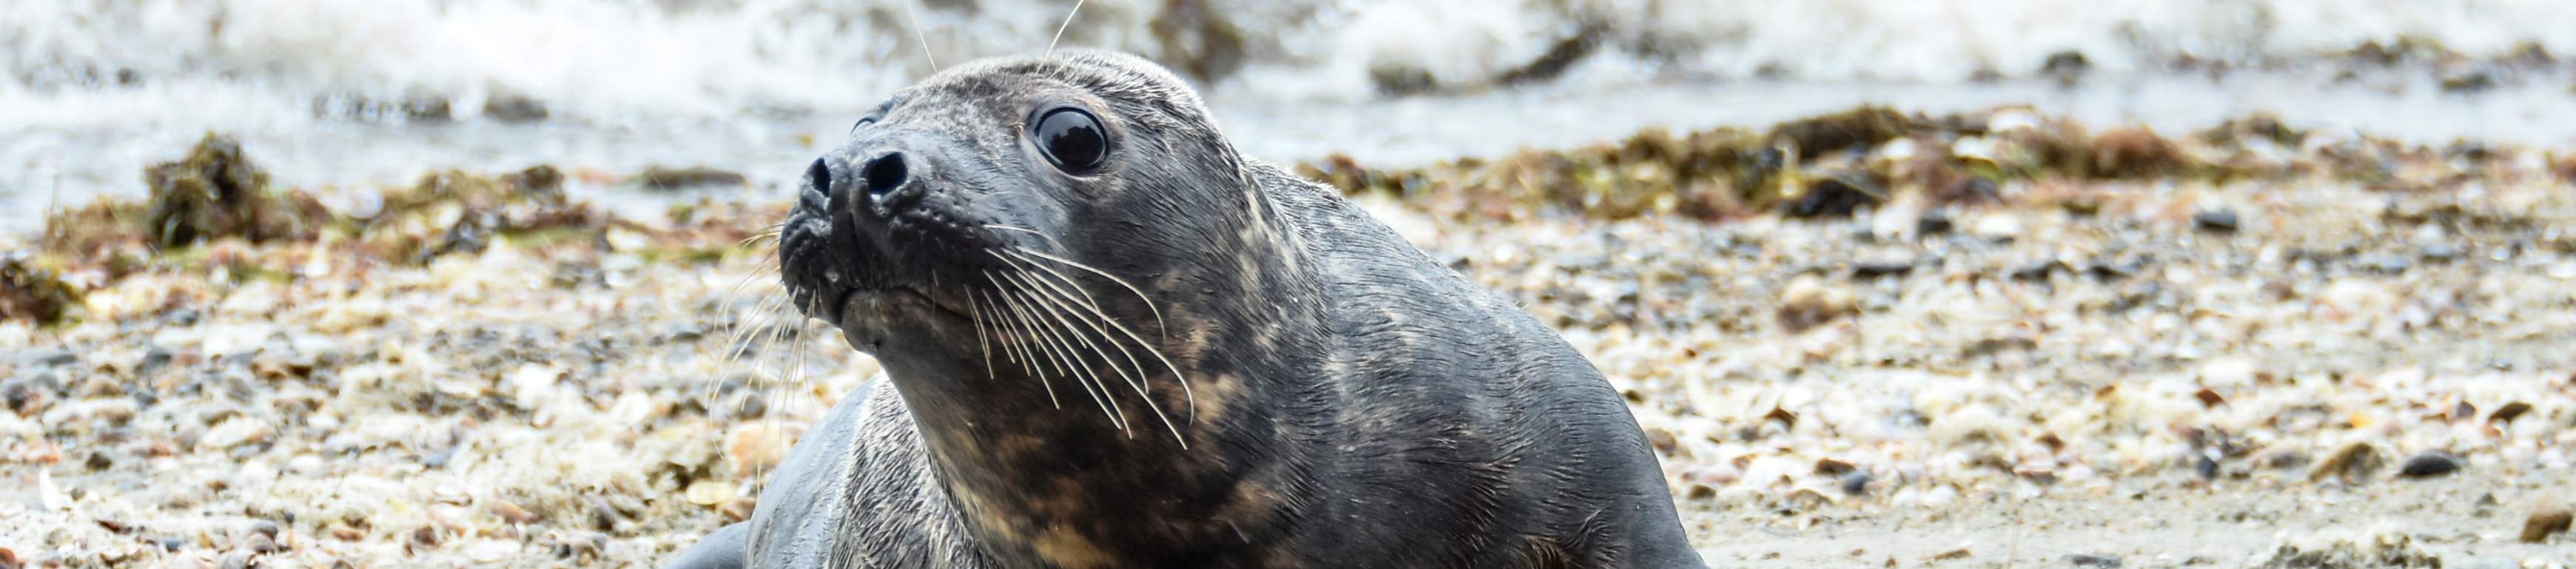 Rain Fall Didn't Stop Animal Rescue Team from Releasing Rehabbed Seal